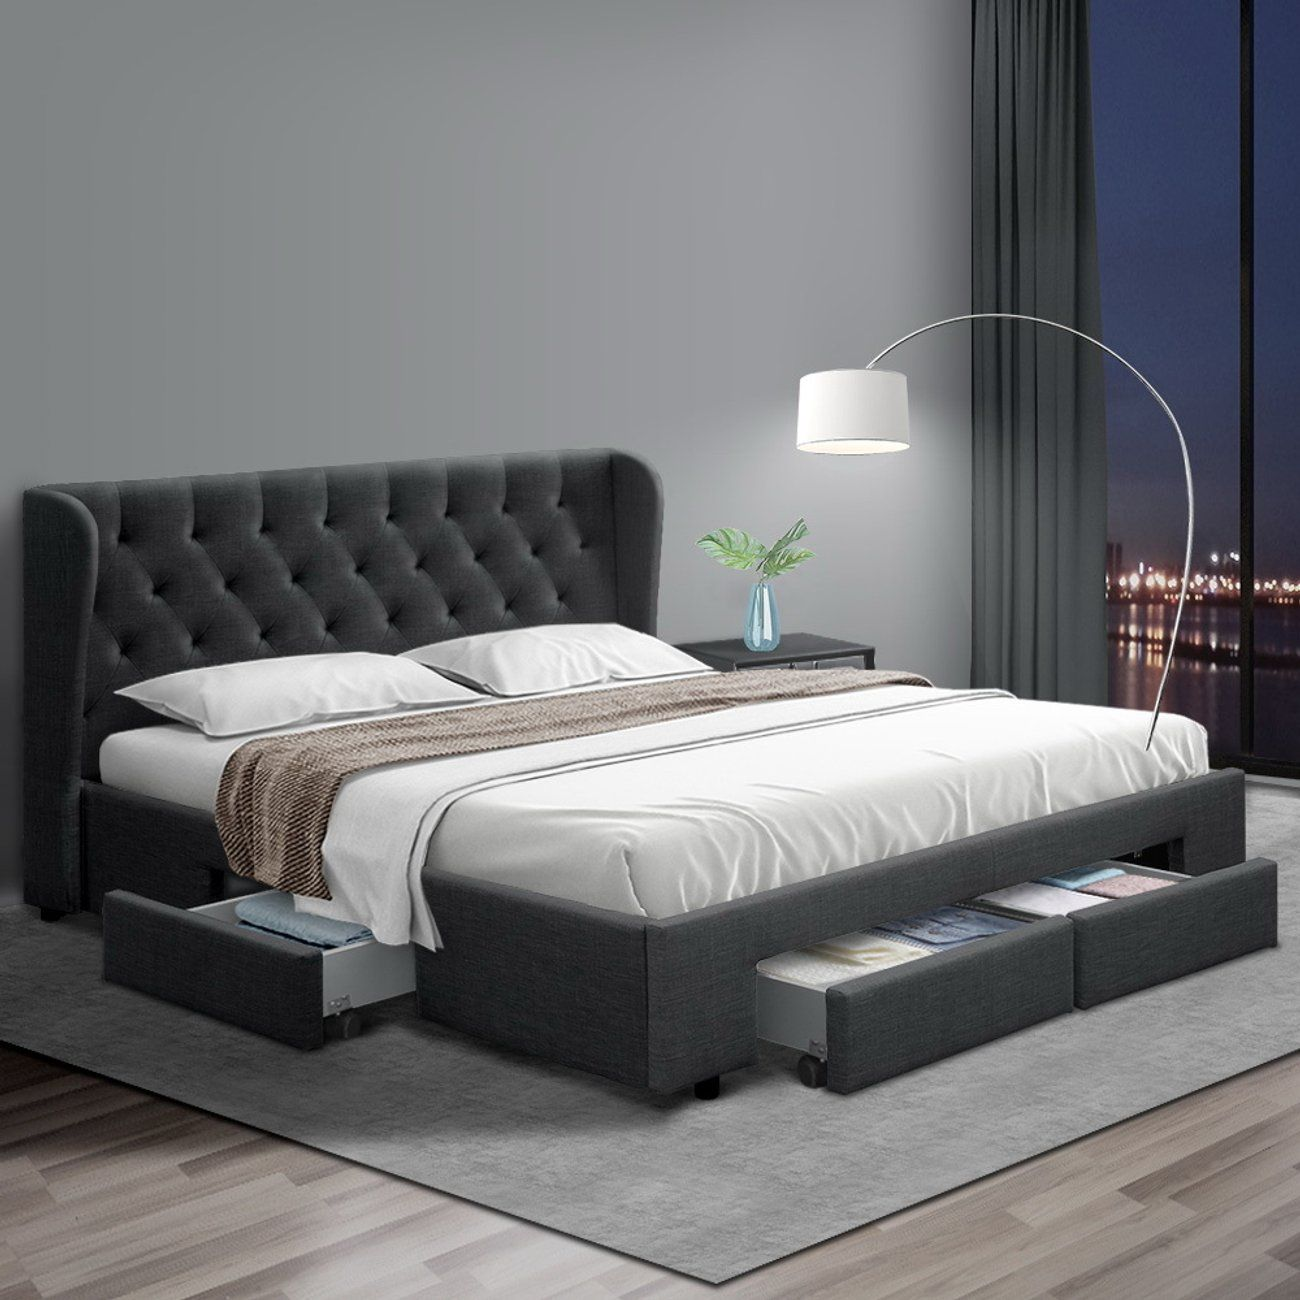 Pin By Betsy B On Bedrooms In 2020 Bed Frame With Storage